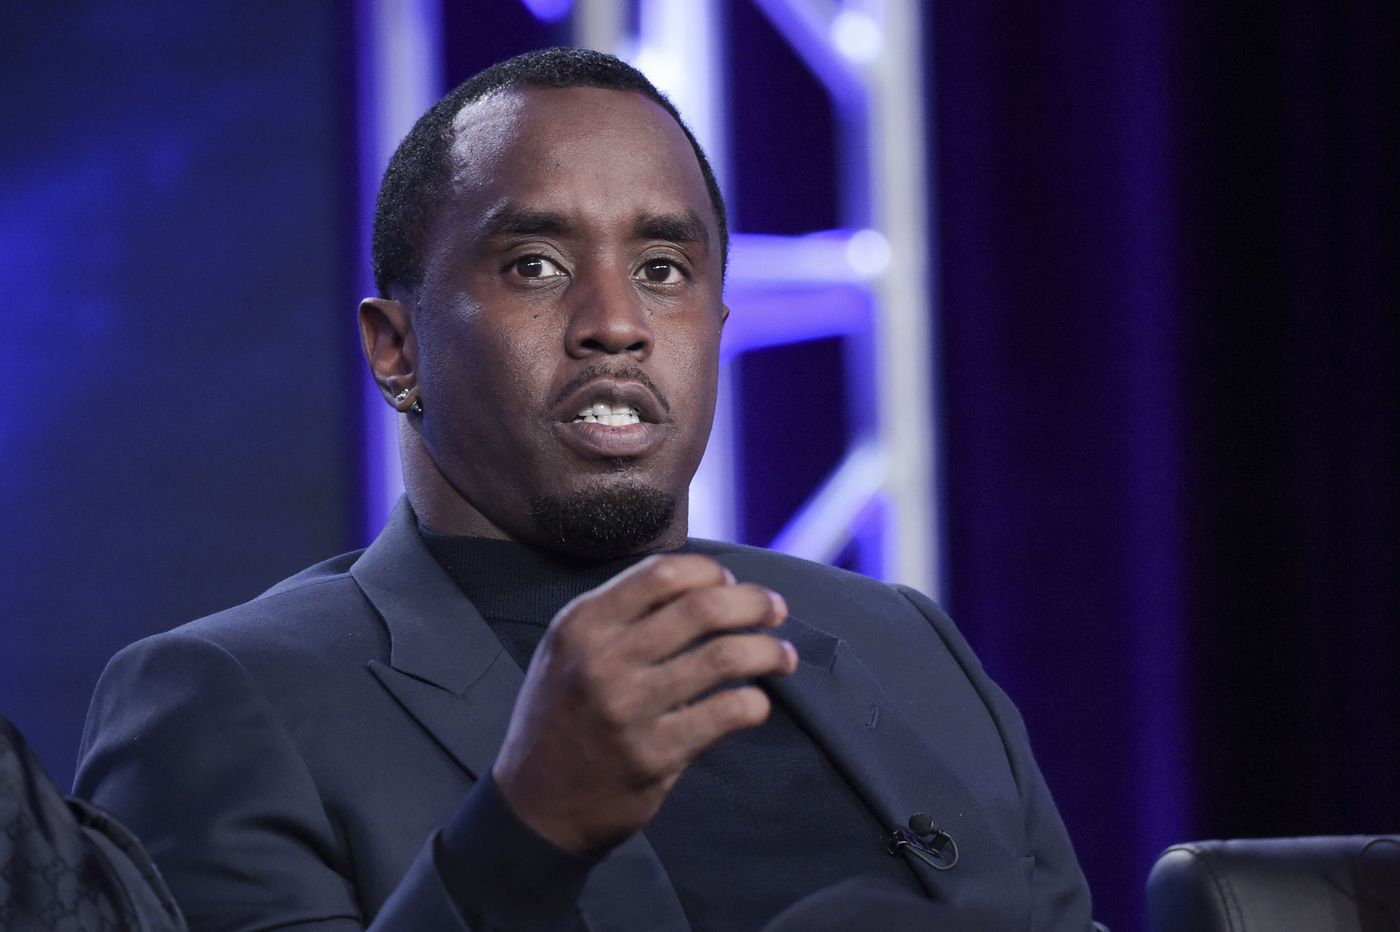 Sean 'Diddy' Combs denounces Comcast's efforts on diversity, says its Supreme Court case could weaken civil rights